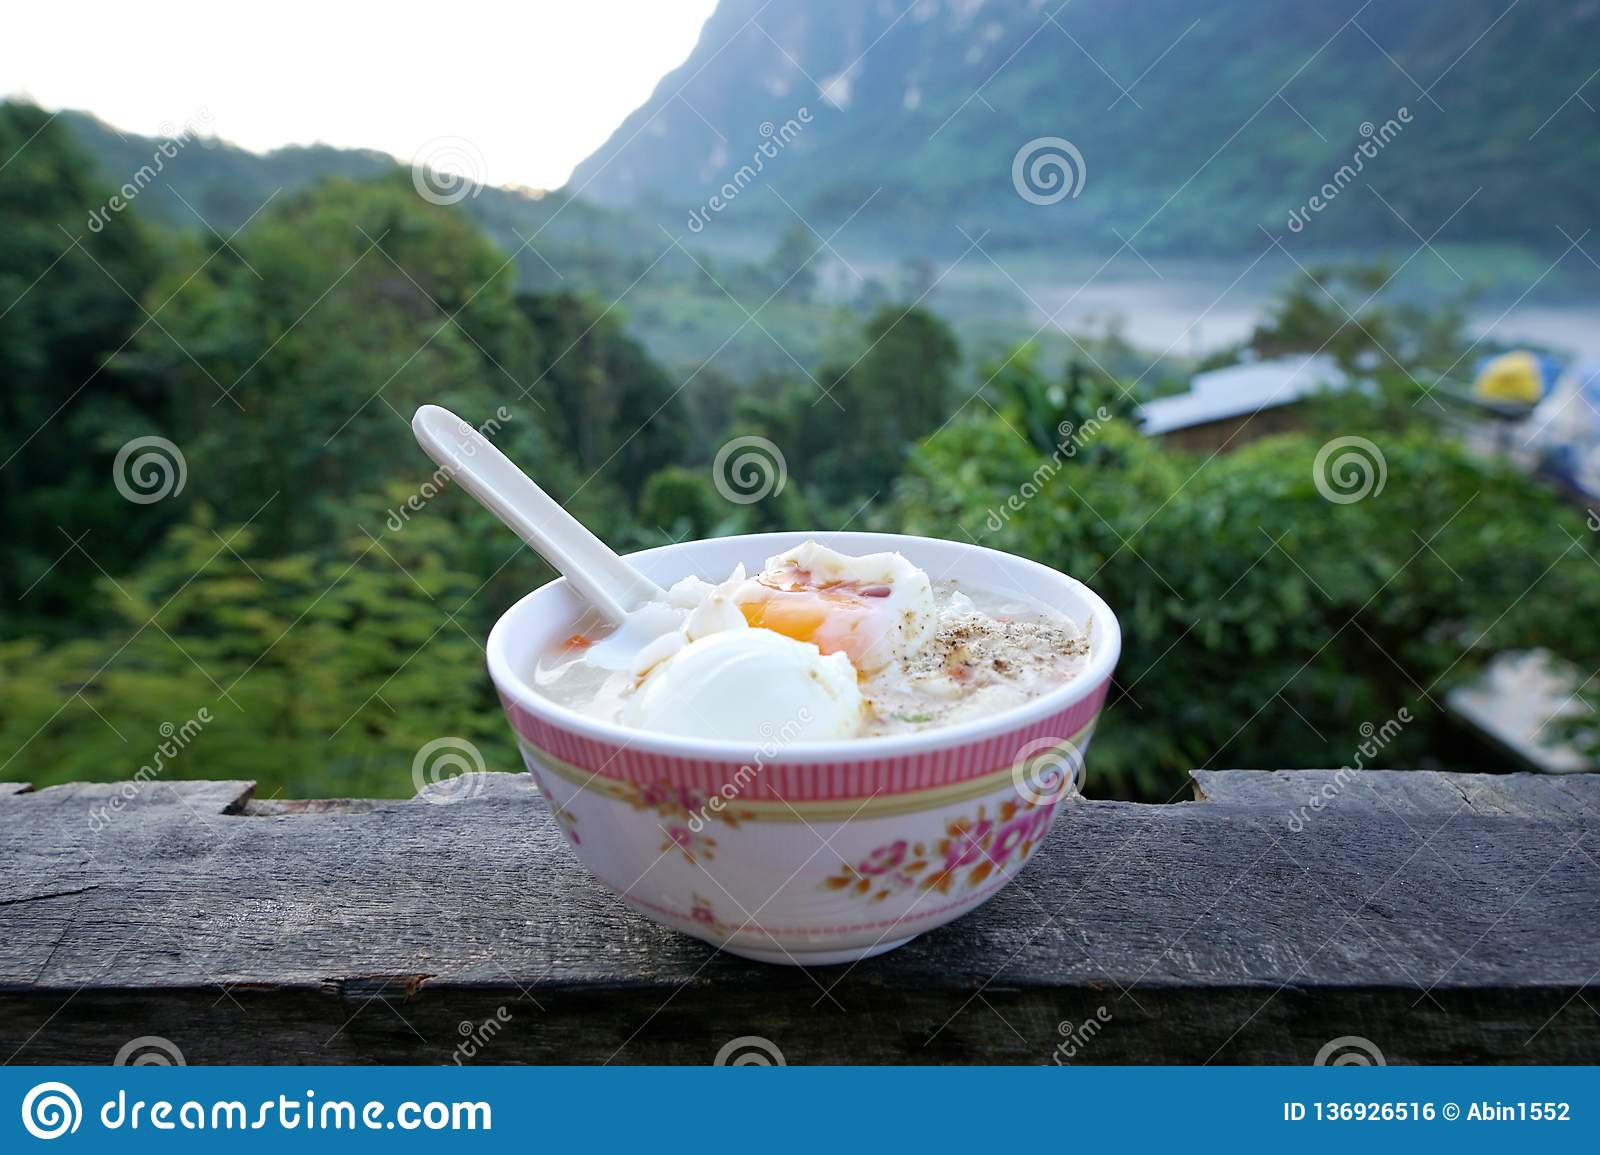 Rice porridge with parboiled egg, minced pork and pepper on wooden table, rice gruel or congee in forest.